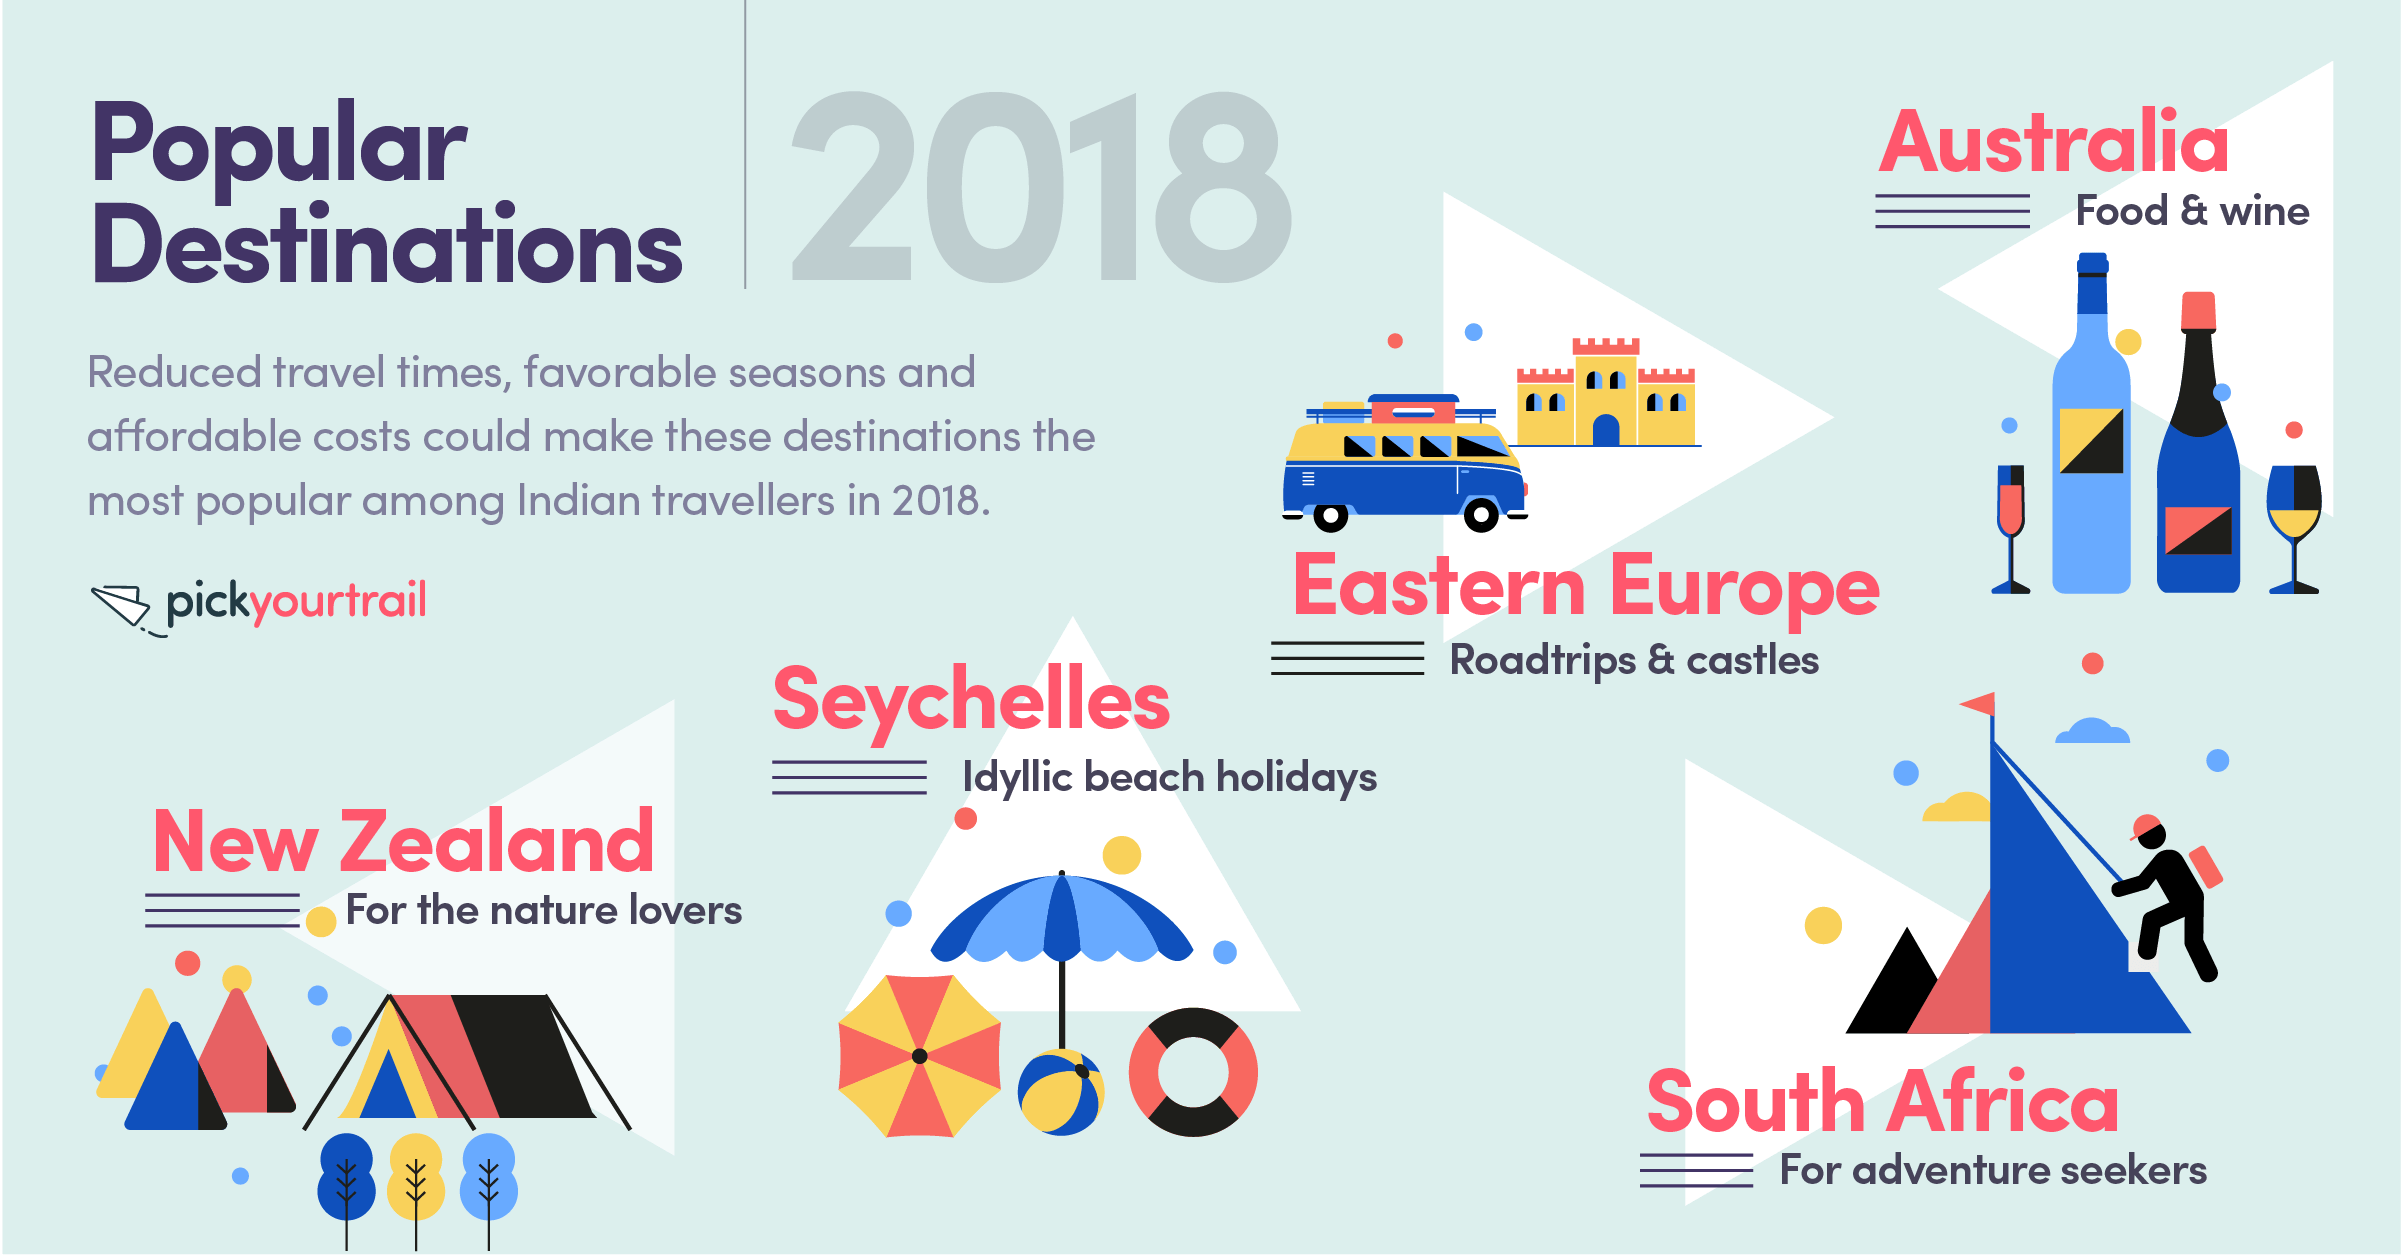 We predict that Eastern Europe, Australia,  New Zealand, South Africa and Seychelles are going to be the hot destinations for travellers in 2018.